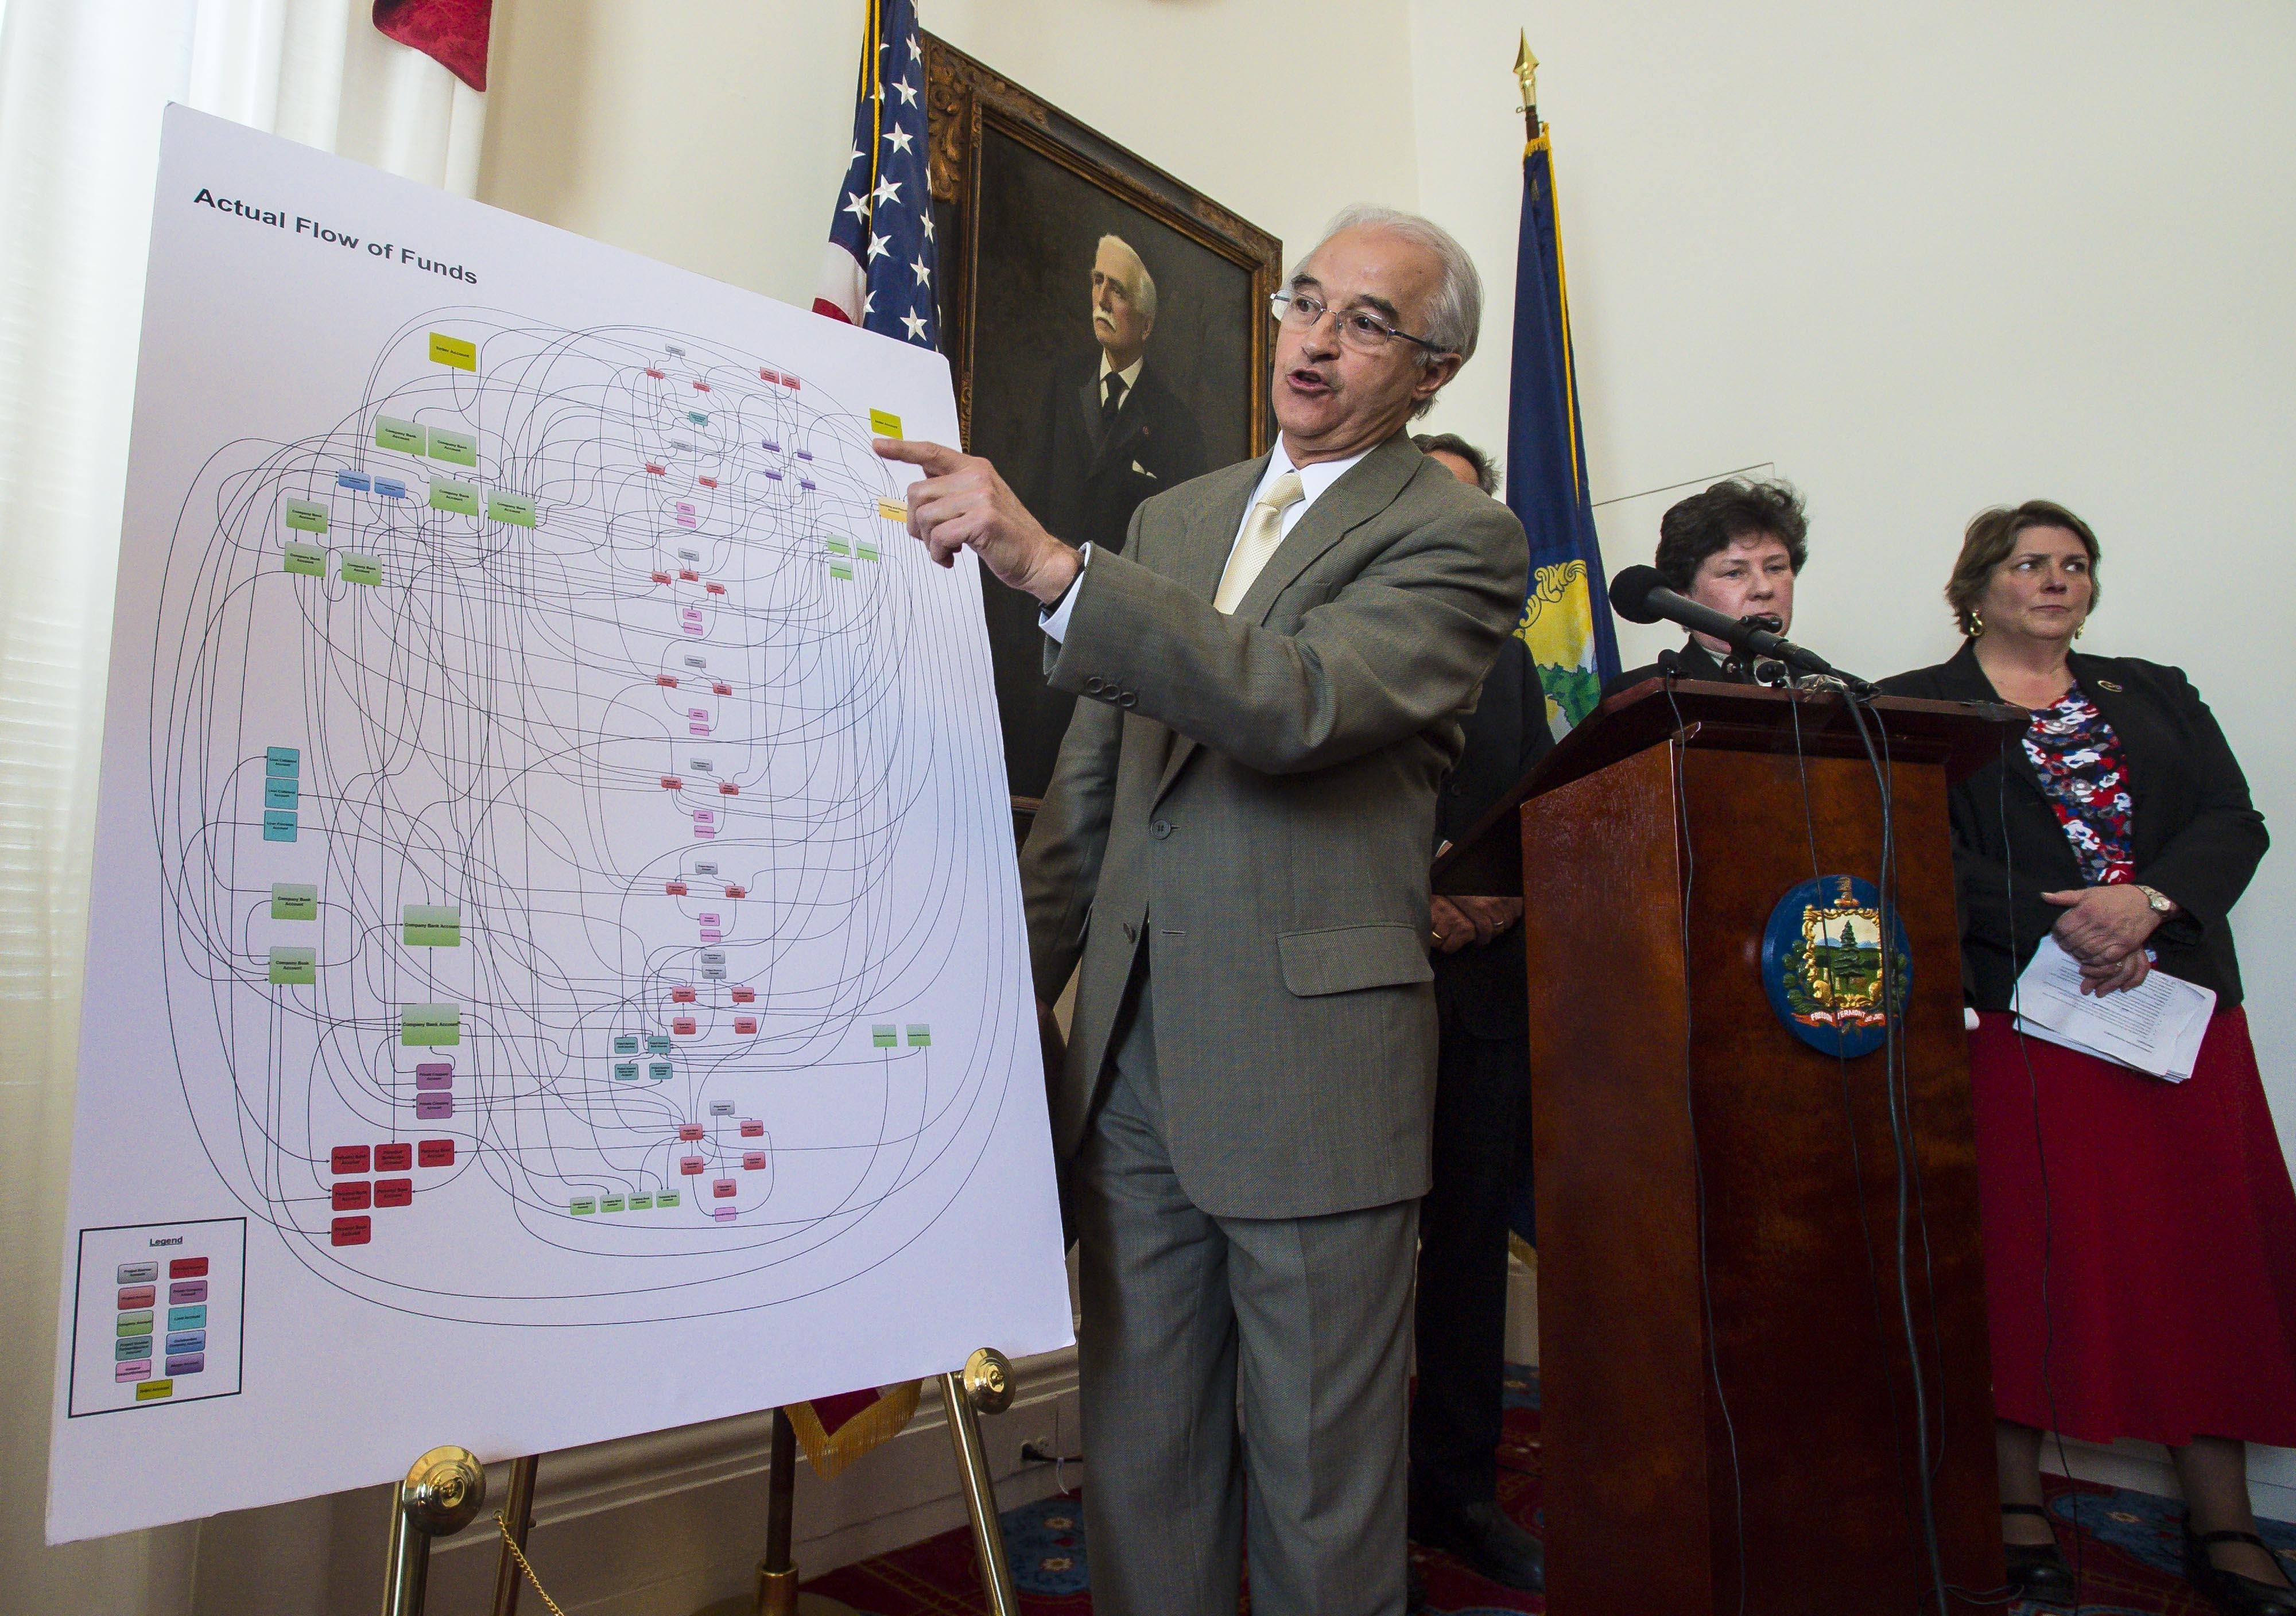 Then-Attorney General William Sorrell speaks during a news conference in Montpelier on Thursday, April 14, 2016, after the Securities and Exchange Commission alleged that Ariel Quiros, owner of the Jay Peak resort and Bill Stenger, president and CEO of Jay Peak, misused more than $200 million of EB-5 immigrant investor funds. He is seen with a chart that purports to show how Stenger and Quiros allegedly diverted funds.